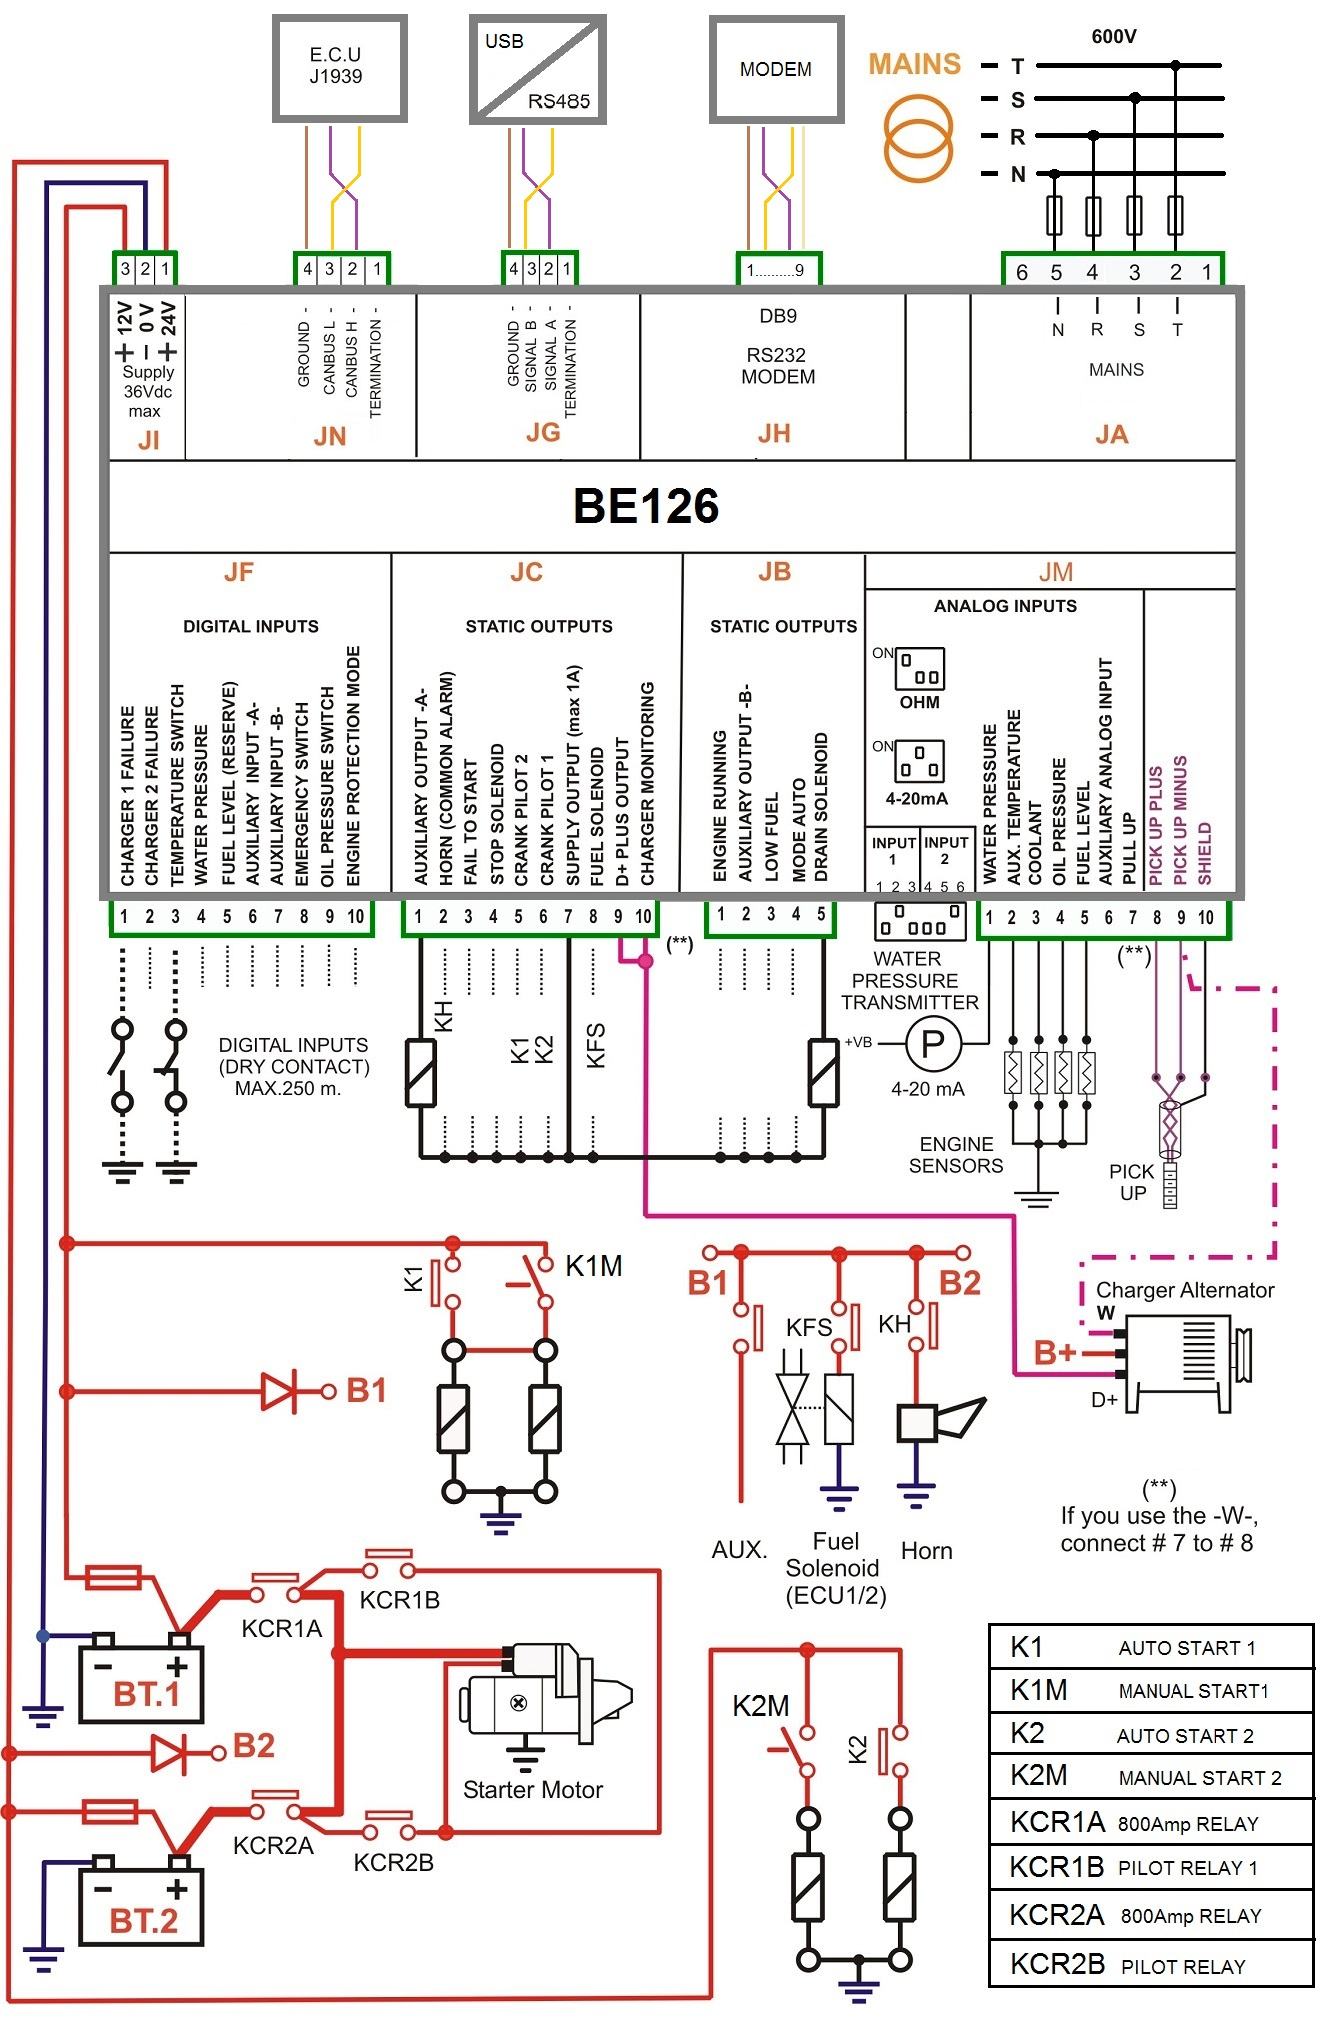 NFPA20 fire pump controller wiring diagram fire pump controller wiring diagram genset controller pump wiring diagram at bakdesigns.co